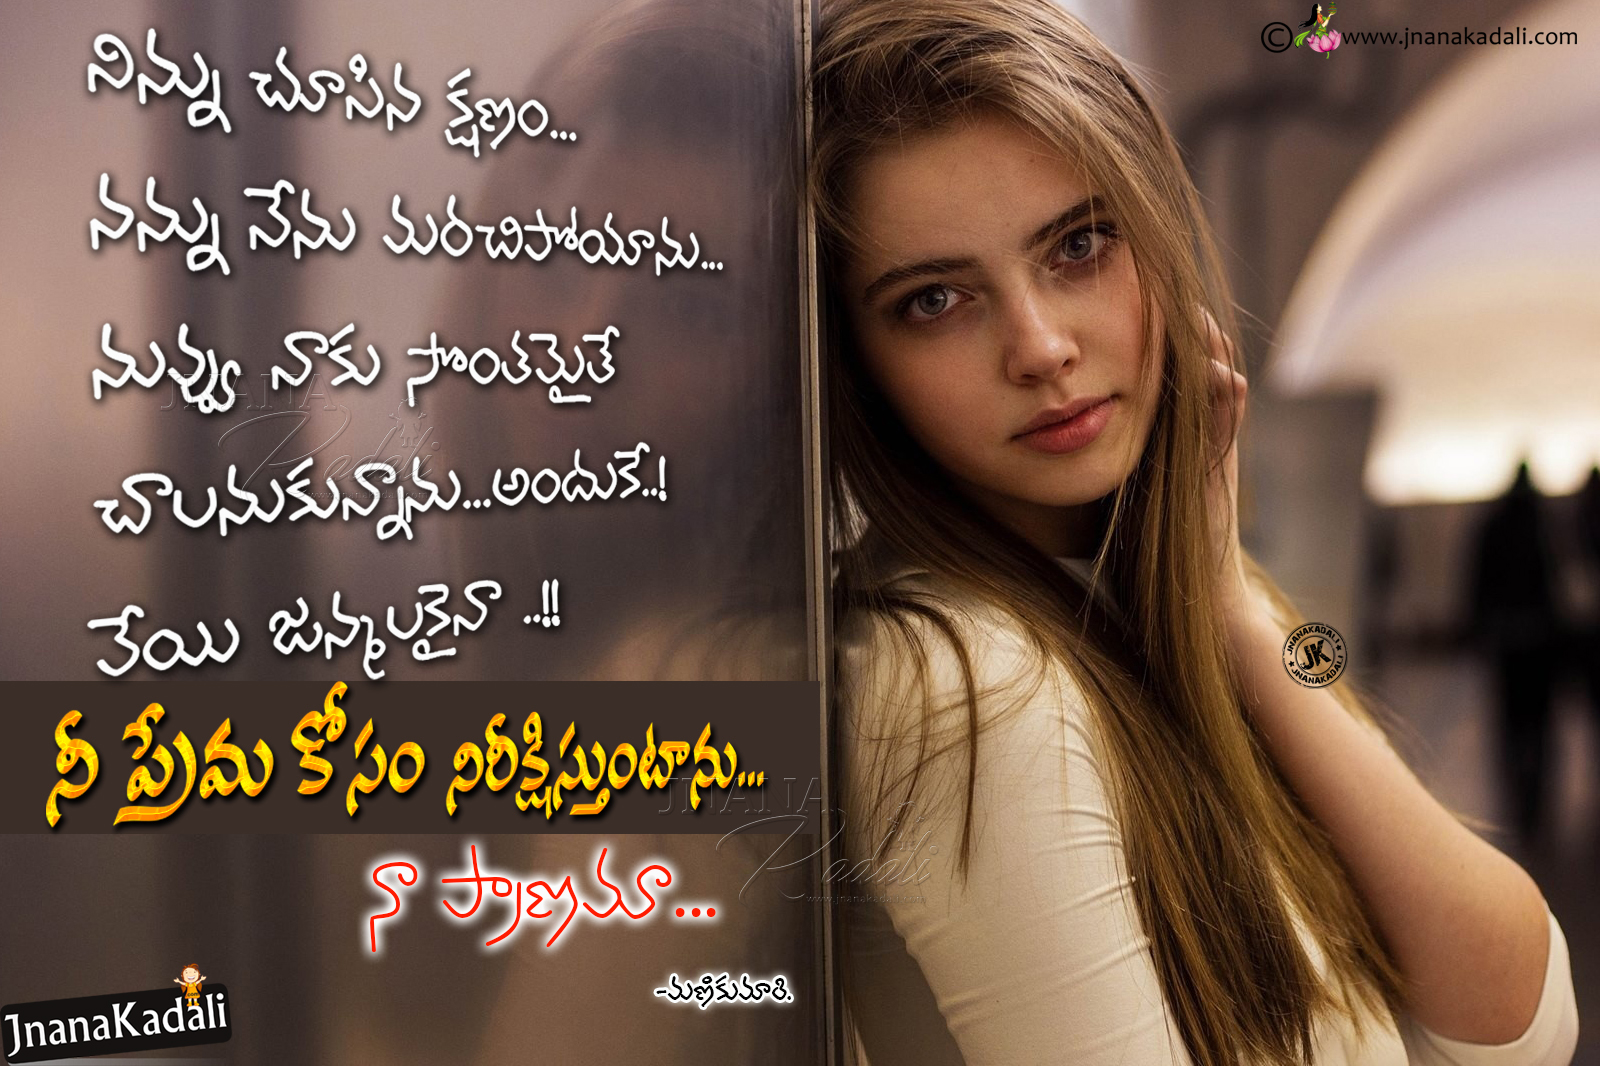 Love Poetry Quotes Heart Touching Waiting For You Love Quotes In Telugutelugu Heart